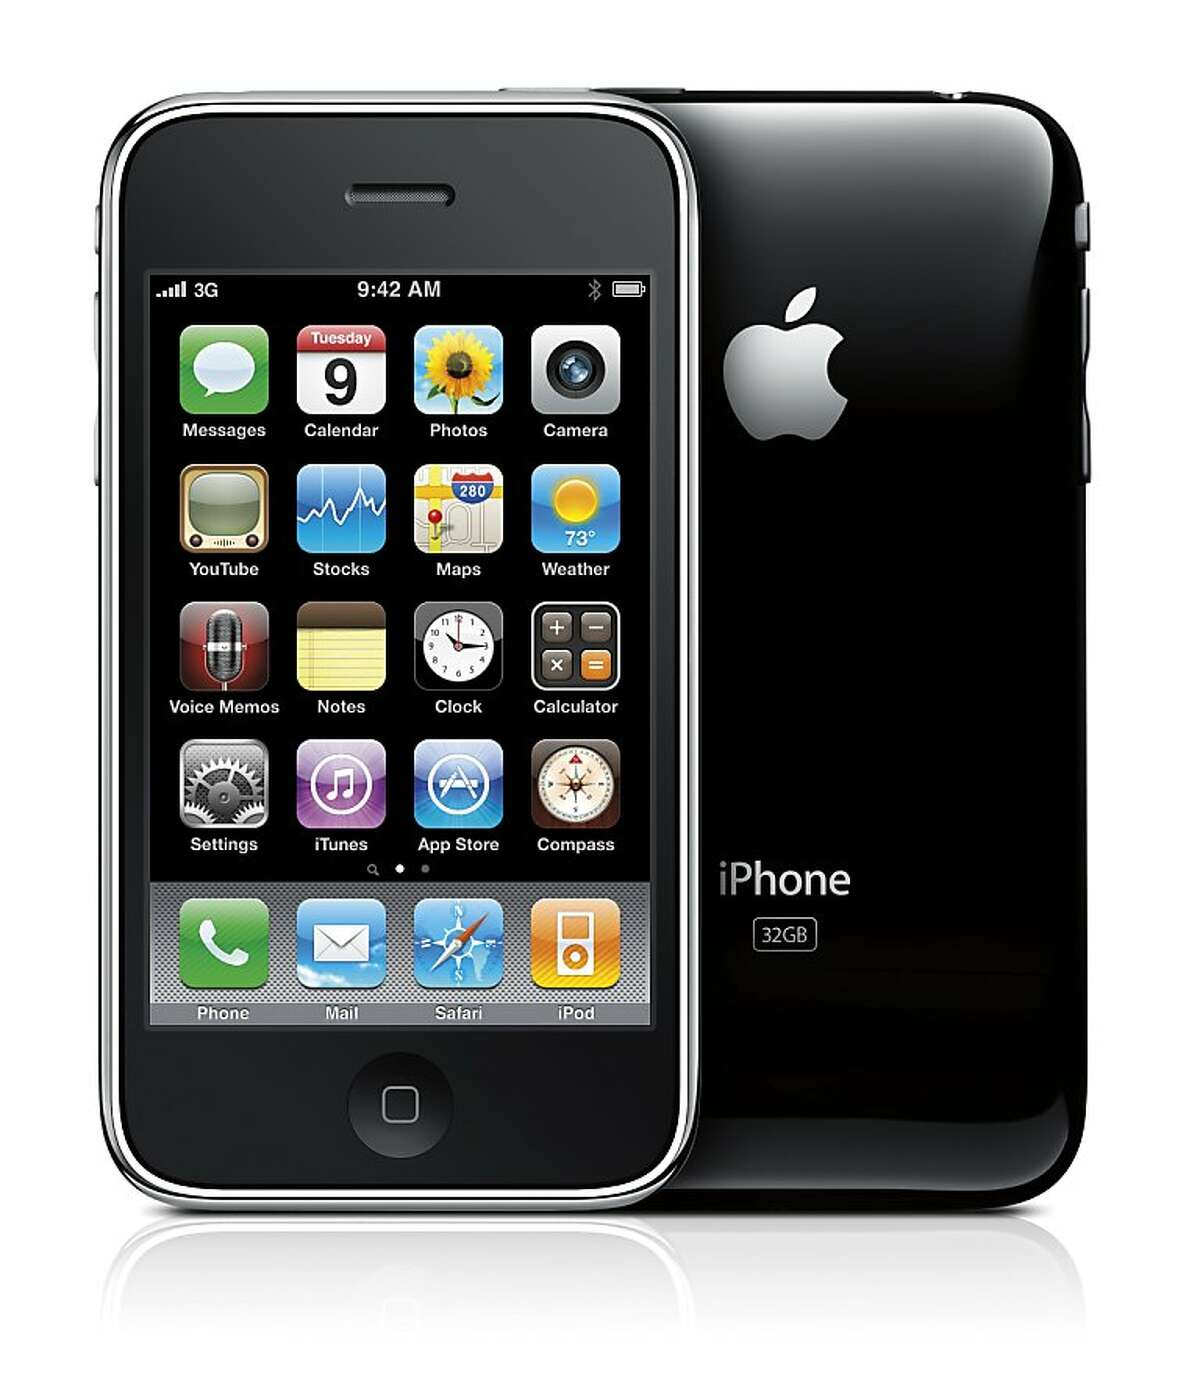 In this product image released by Apple Inc., Monday, June 8, 2009, the new iPhone 3Gs is shown. (AP Photo/Apple Inc.) ** NO SALES ** Ran on: 06-09-2009 Ran on: 01-06-2010 Photo caption Dummy text goes here. Dummy text goes here. Dummy text goes here. Dummy text goes here. Dummy text goes here. Dummy text goes here. Dummy text goes here. Dummy text goes here.###Photo: nexus06_PHuphone1244246400Apple Inc.###Live Caption:In this product image released by Apple Inc., Monday, June 8, 2009, the new iPhone 3Gs is shown. (AP Photo-Apple Inc.) ** NO SALES **###Caption History:In this product image released by Apple Inc., Monday, June 8, 2009, the new iPhone 3Gs is shown. (AP Photo-Apple Inc.) ** NO SALES ** Ran on: 06-09-2009###Notes:###Special Instructions:IN THIS PRODUCT IMAGE RELEASED BY APPLE INC., NO SALES AP PROVIDES ACCESS TO THIS PUBLICLY DISTRIBUTED HANDOUT PHOTO TO BE USED ONLY TO ILLUSTRATE NEWS REPORTING OR COMMENTARY ON THE FACTS OR EVENTS DEPICTED IN THIS IMAGE. AP provides access to this publi Ran on: 01-06-2010 Photo caption Dummy text goes here. Dummy text goes here. Dummy text goes here. Dummy text goes here. Dummy text goes here. Dummy text goes here. Dummy text goes here. Dummy text goes here.###Photo: nexus06_PHuphone1244246400Apple Inc.###Live Caption:In this product image released by Apple Inc., Monday, June 8, 2009, the new iPhone 3Gs is shown. (AP Photo-Apple Inc.) ** NO SALES **###Caption History:In this product image released by Apple Inc., Monday, June 8, 2009, the new iPhone 3Gs is shown. (AP Photo-Apple Inc.) ** NO SALES ** Ran on: 06-09-2009###Notes:###Special...